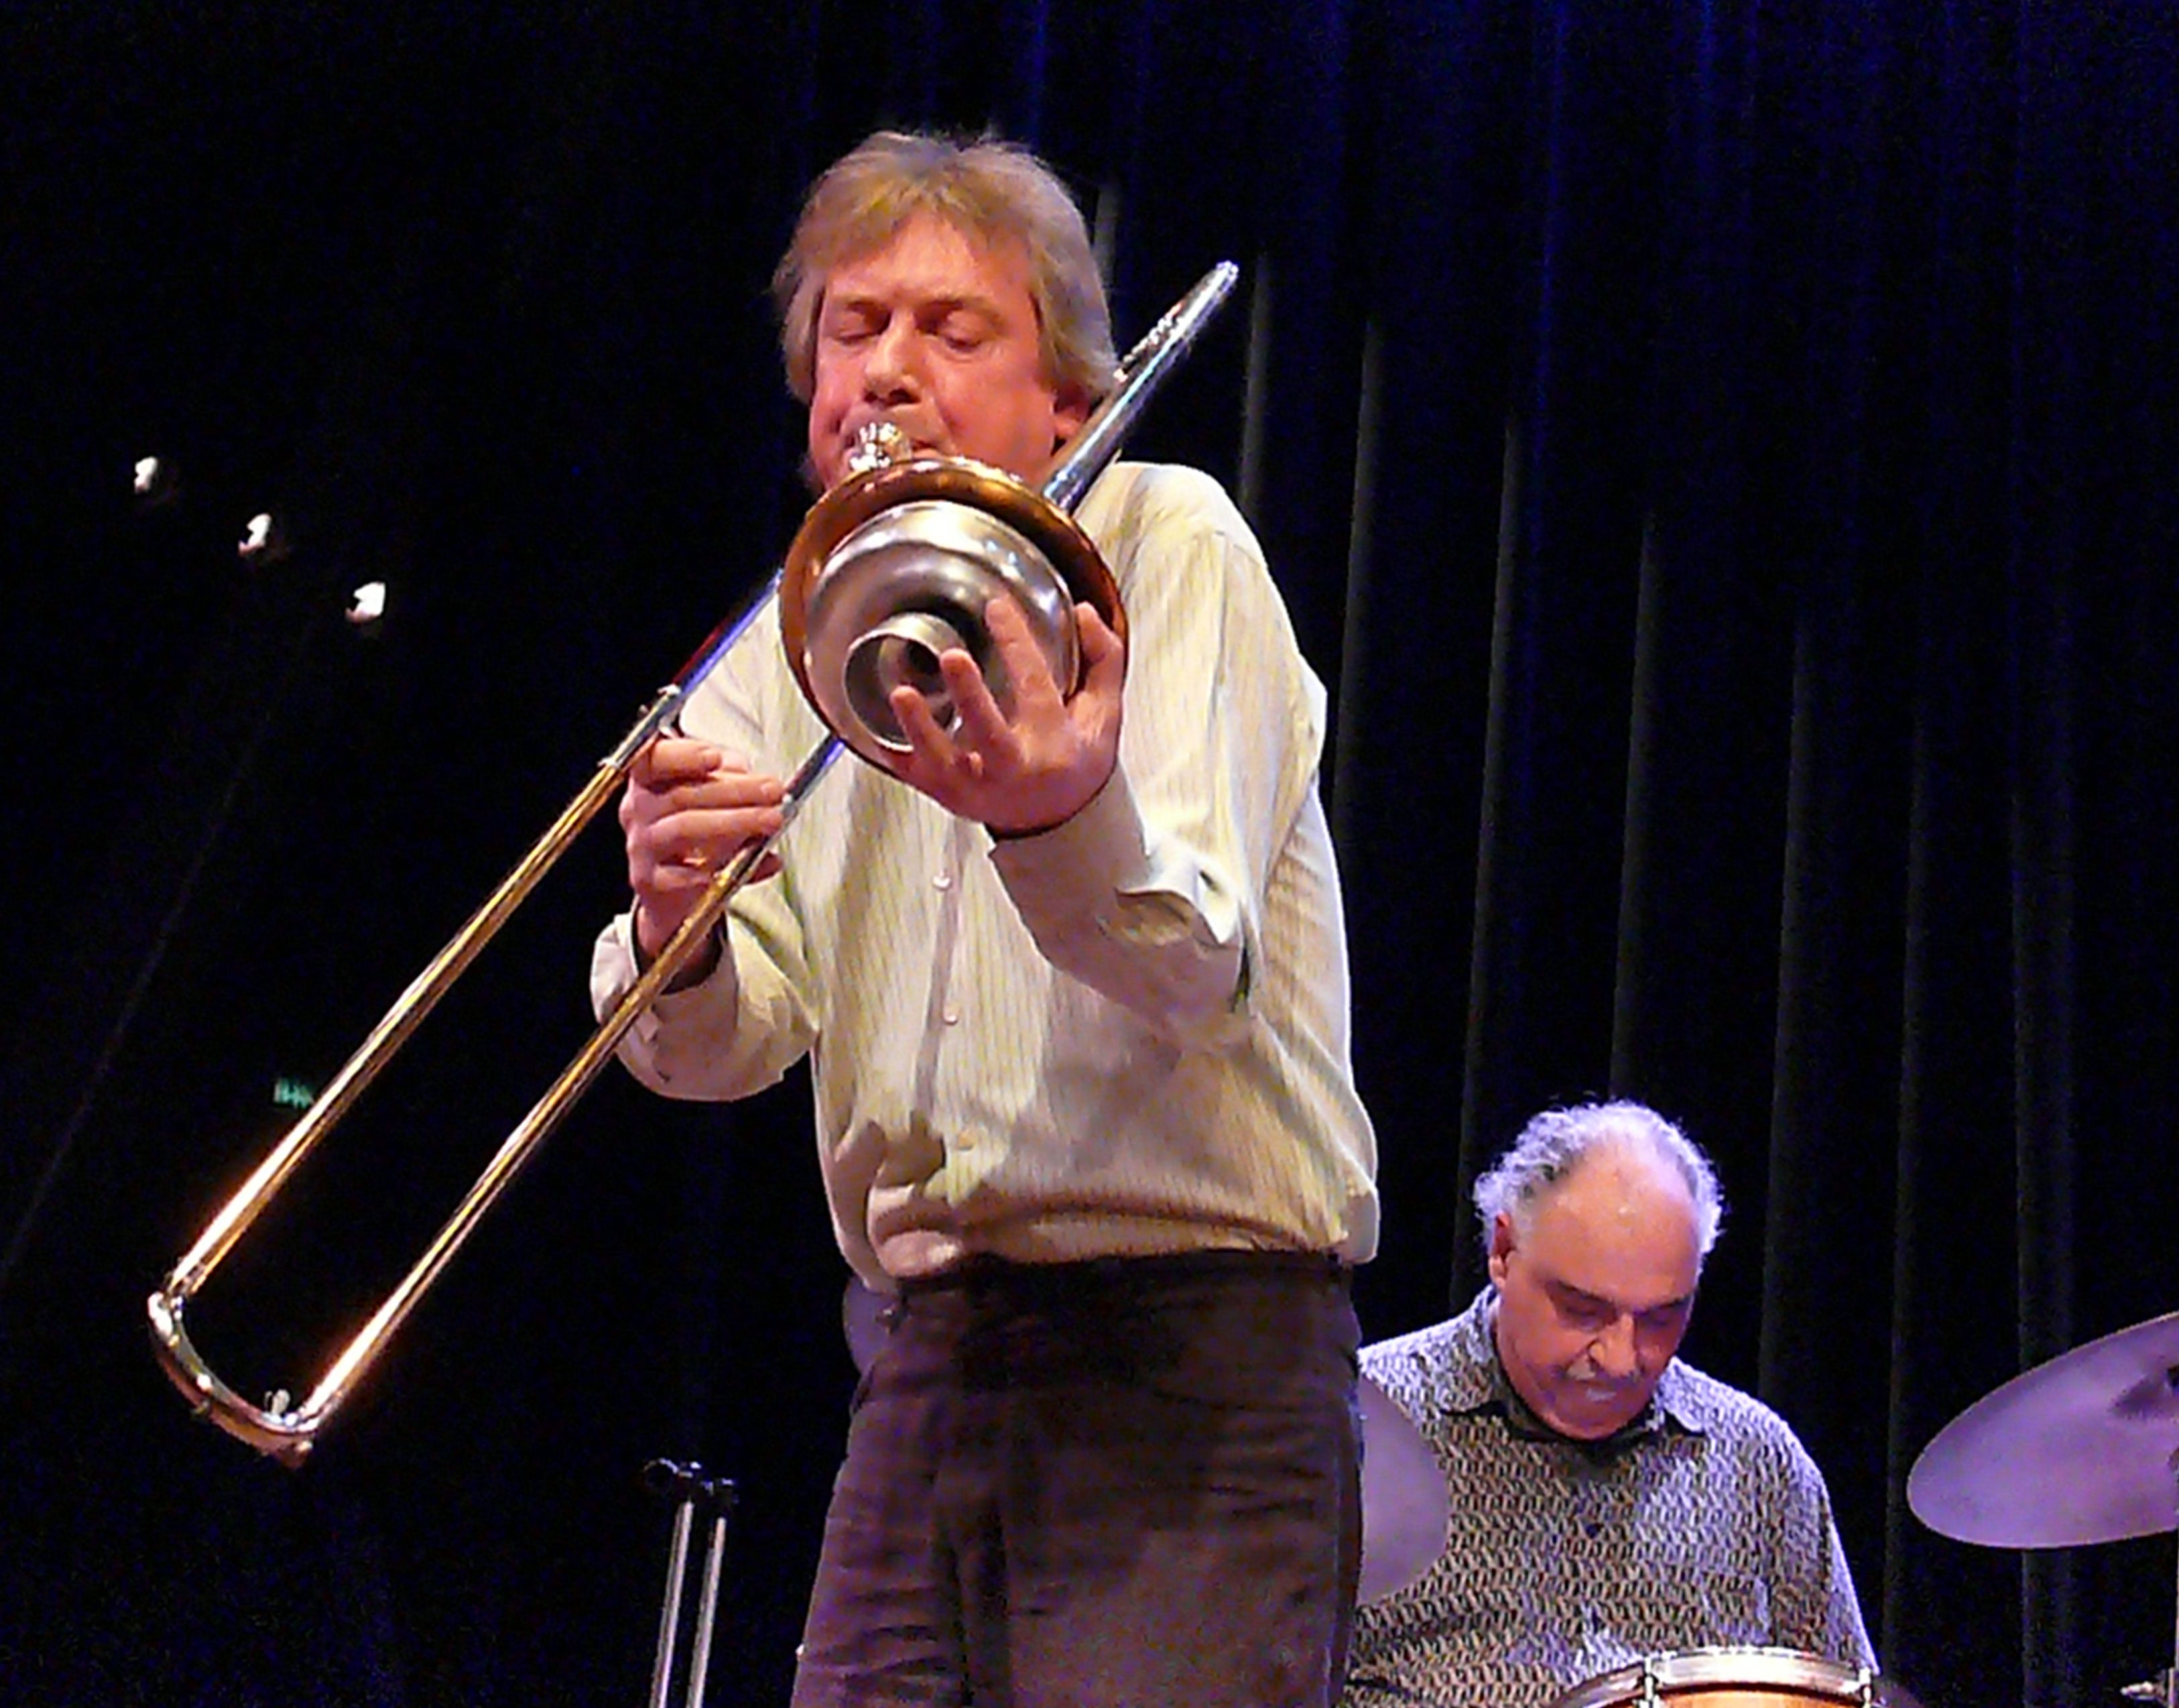 Johannes Bauer at the Bimhuis in Amsterdam, 13 February 2009